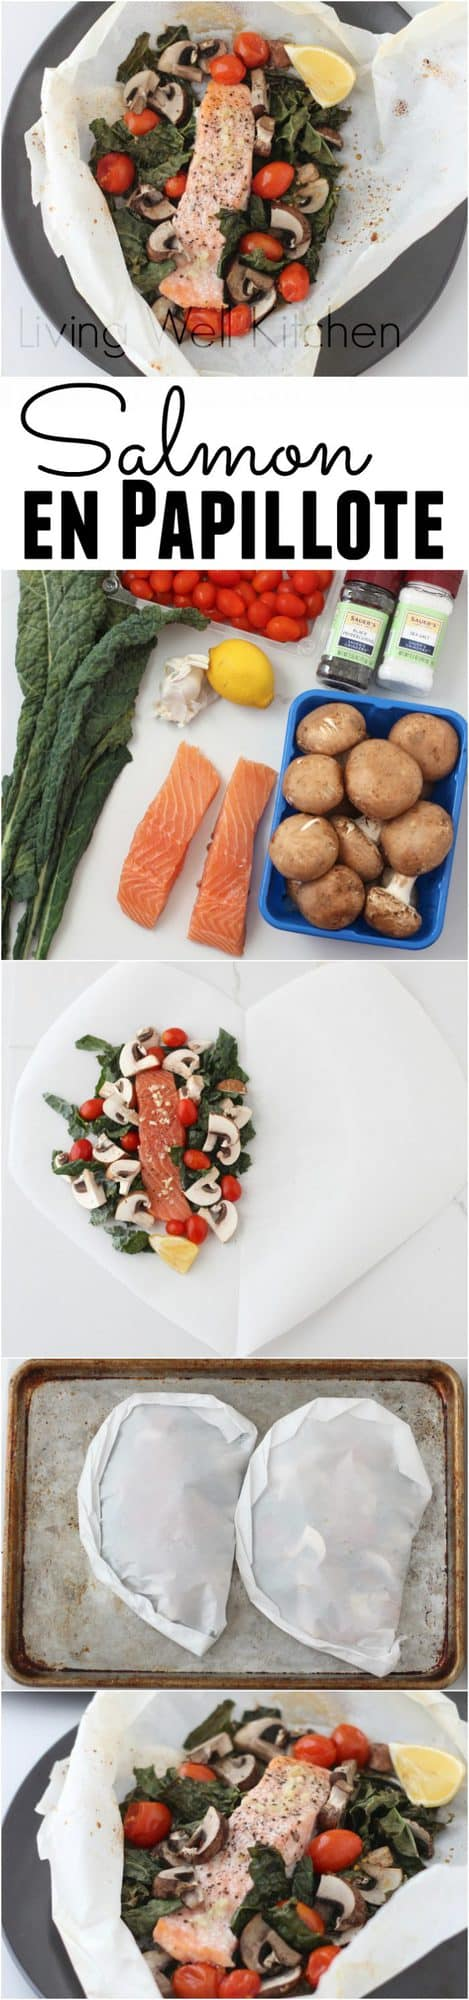 Simple heart health promoting ingredients, tons of veggies, and easy clean up make this Salmon enPapillote recipe a dream come true. Great for a quick, healthy dinner that is full of flavor. Gluten-free, dairy-free